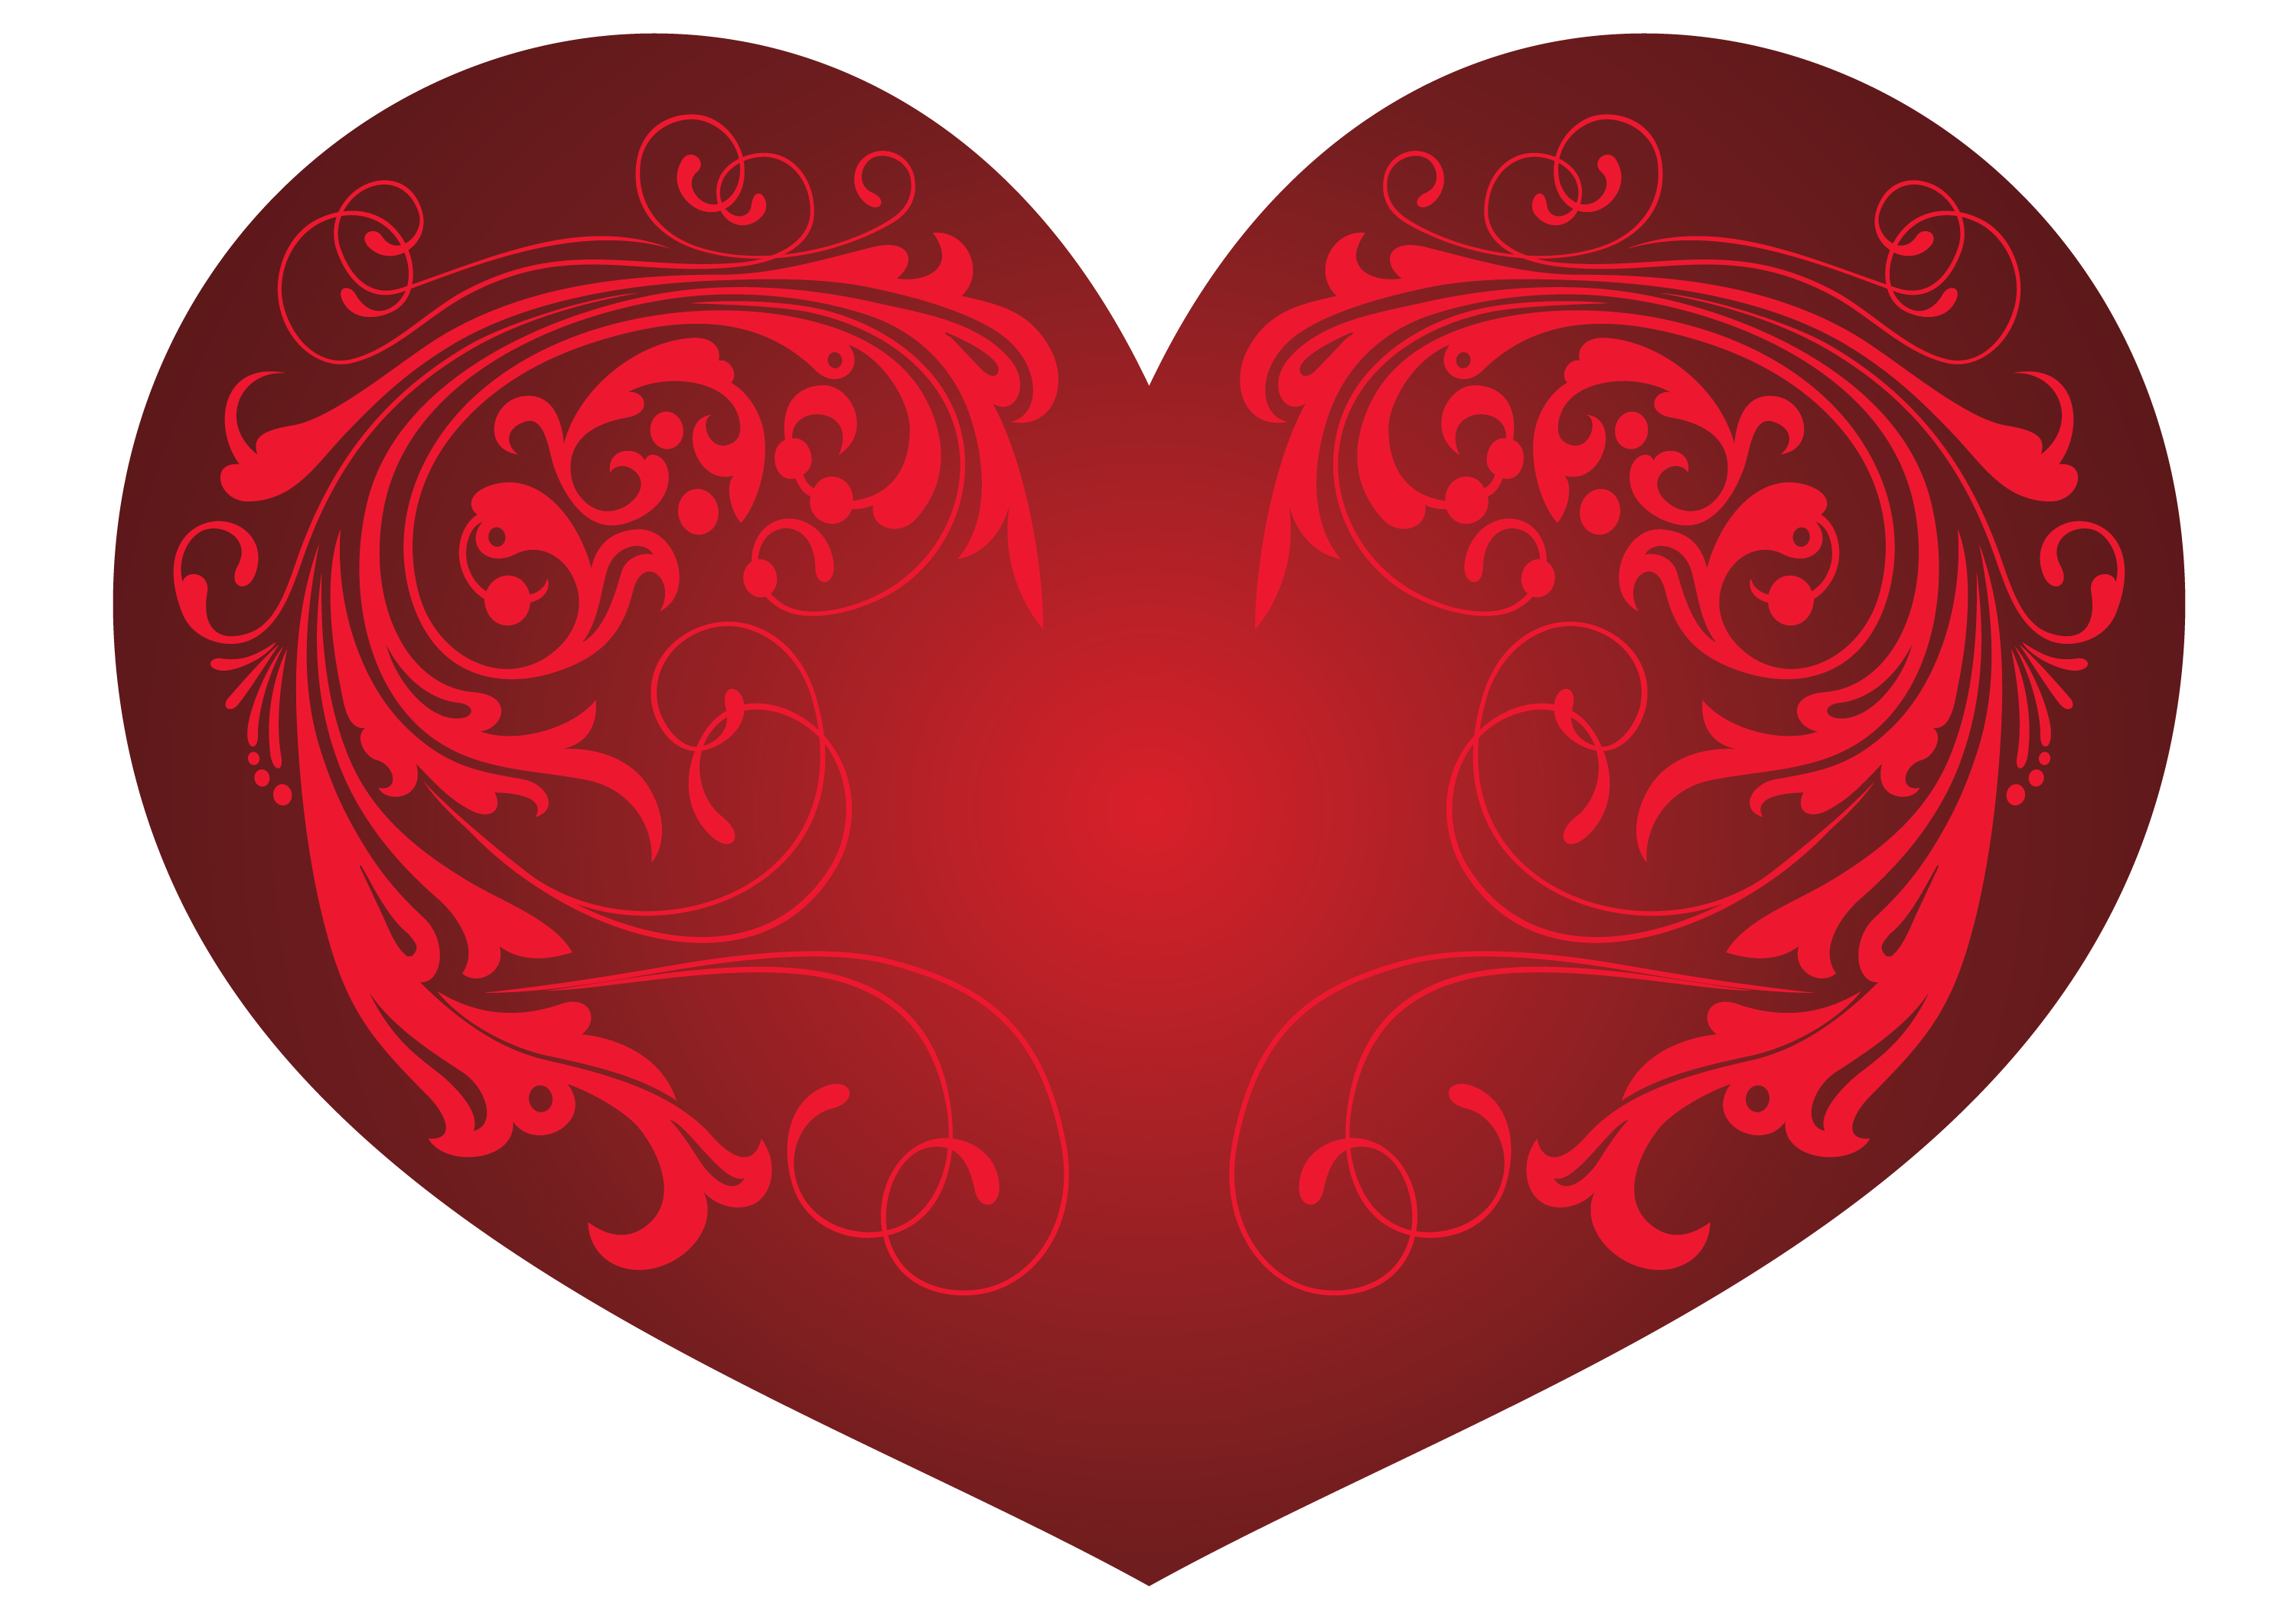 Red hearts png. Heart and ornaments clipart